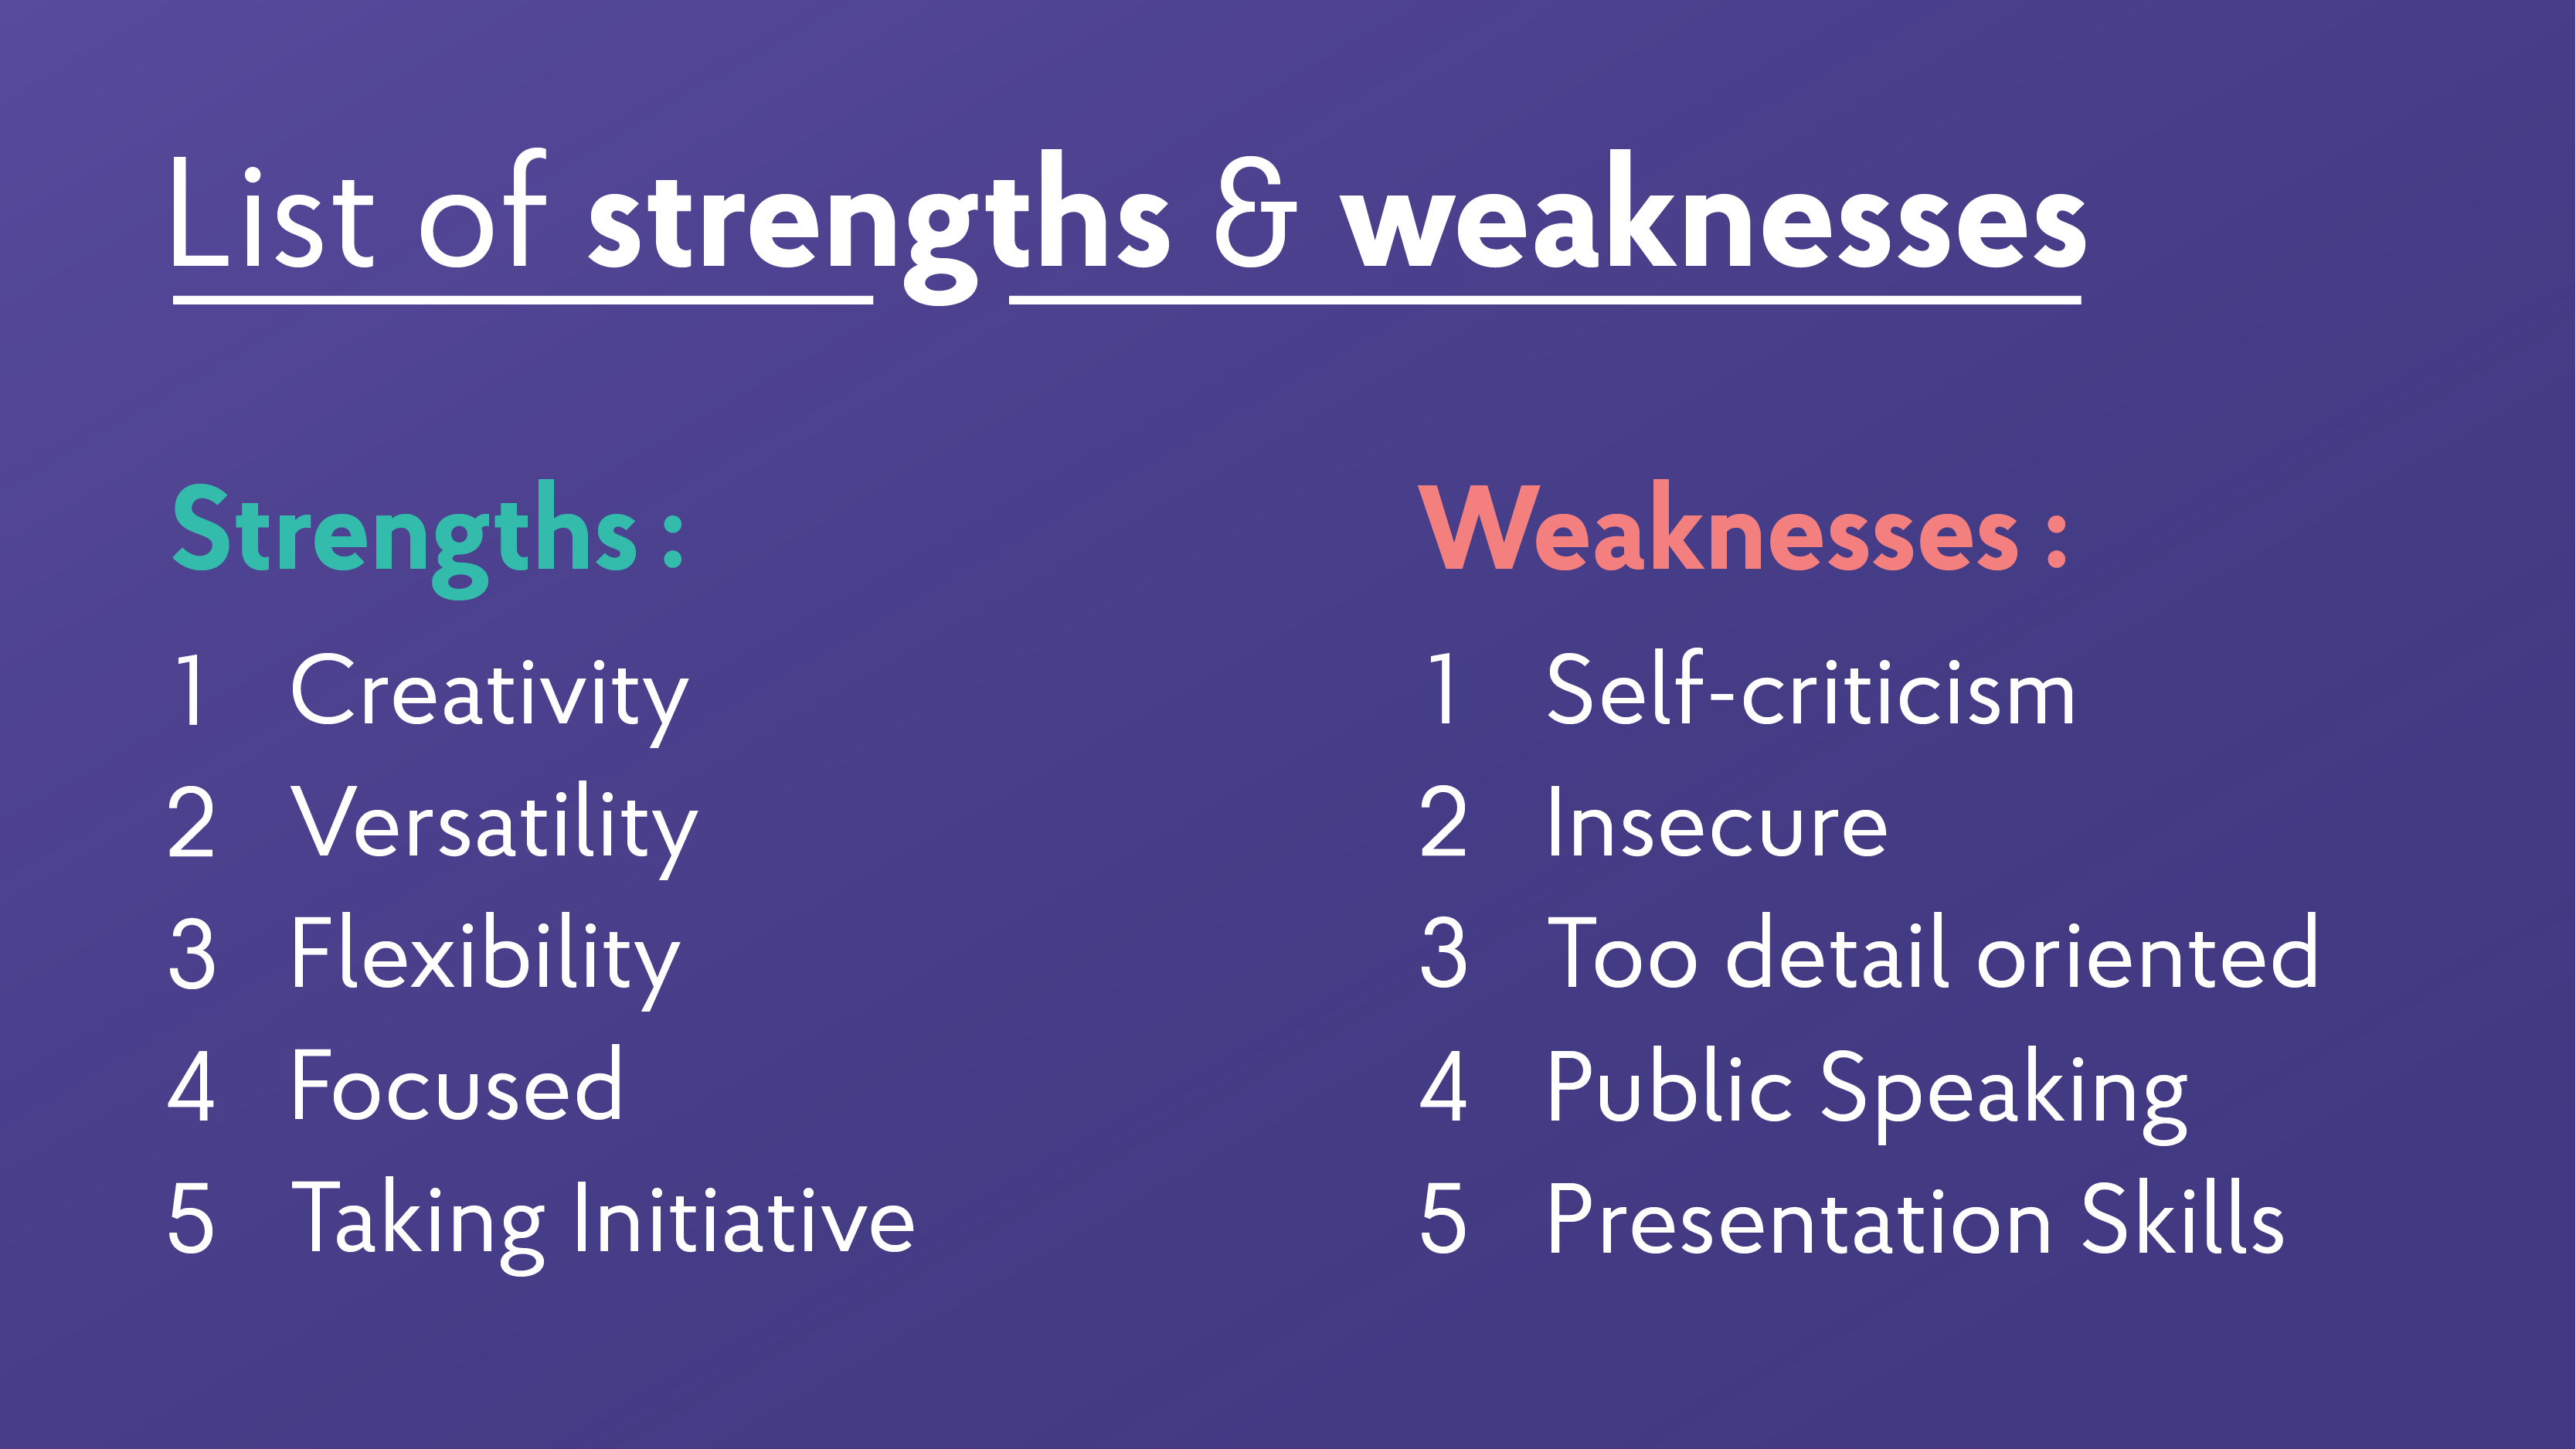 strengths and weaknesses for job interviews  2019 best